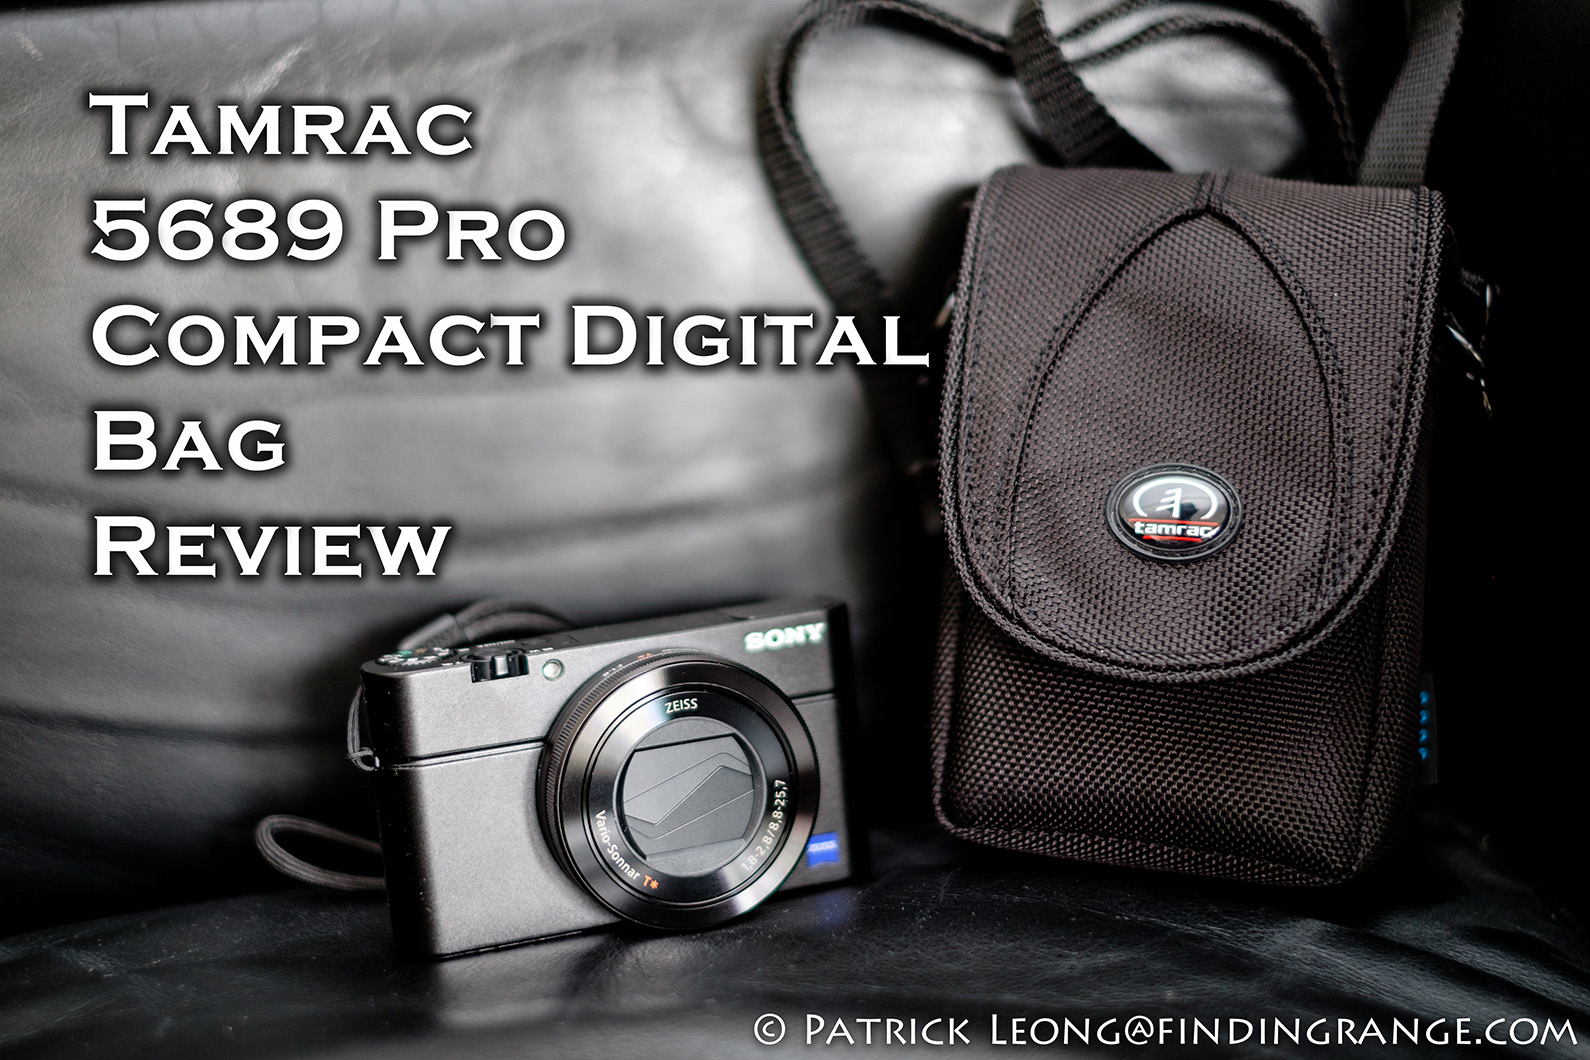 Tamrac-5689-Pro-Compact-Digital-Bag-Review-1